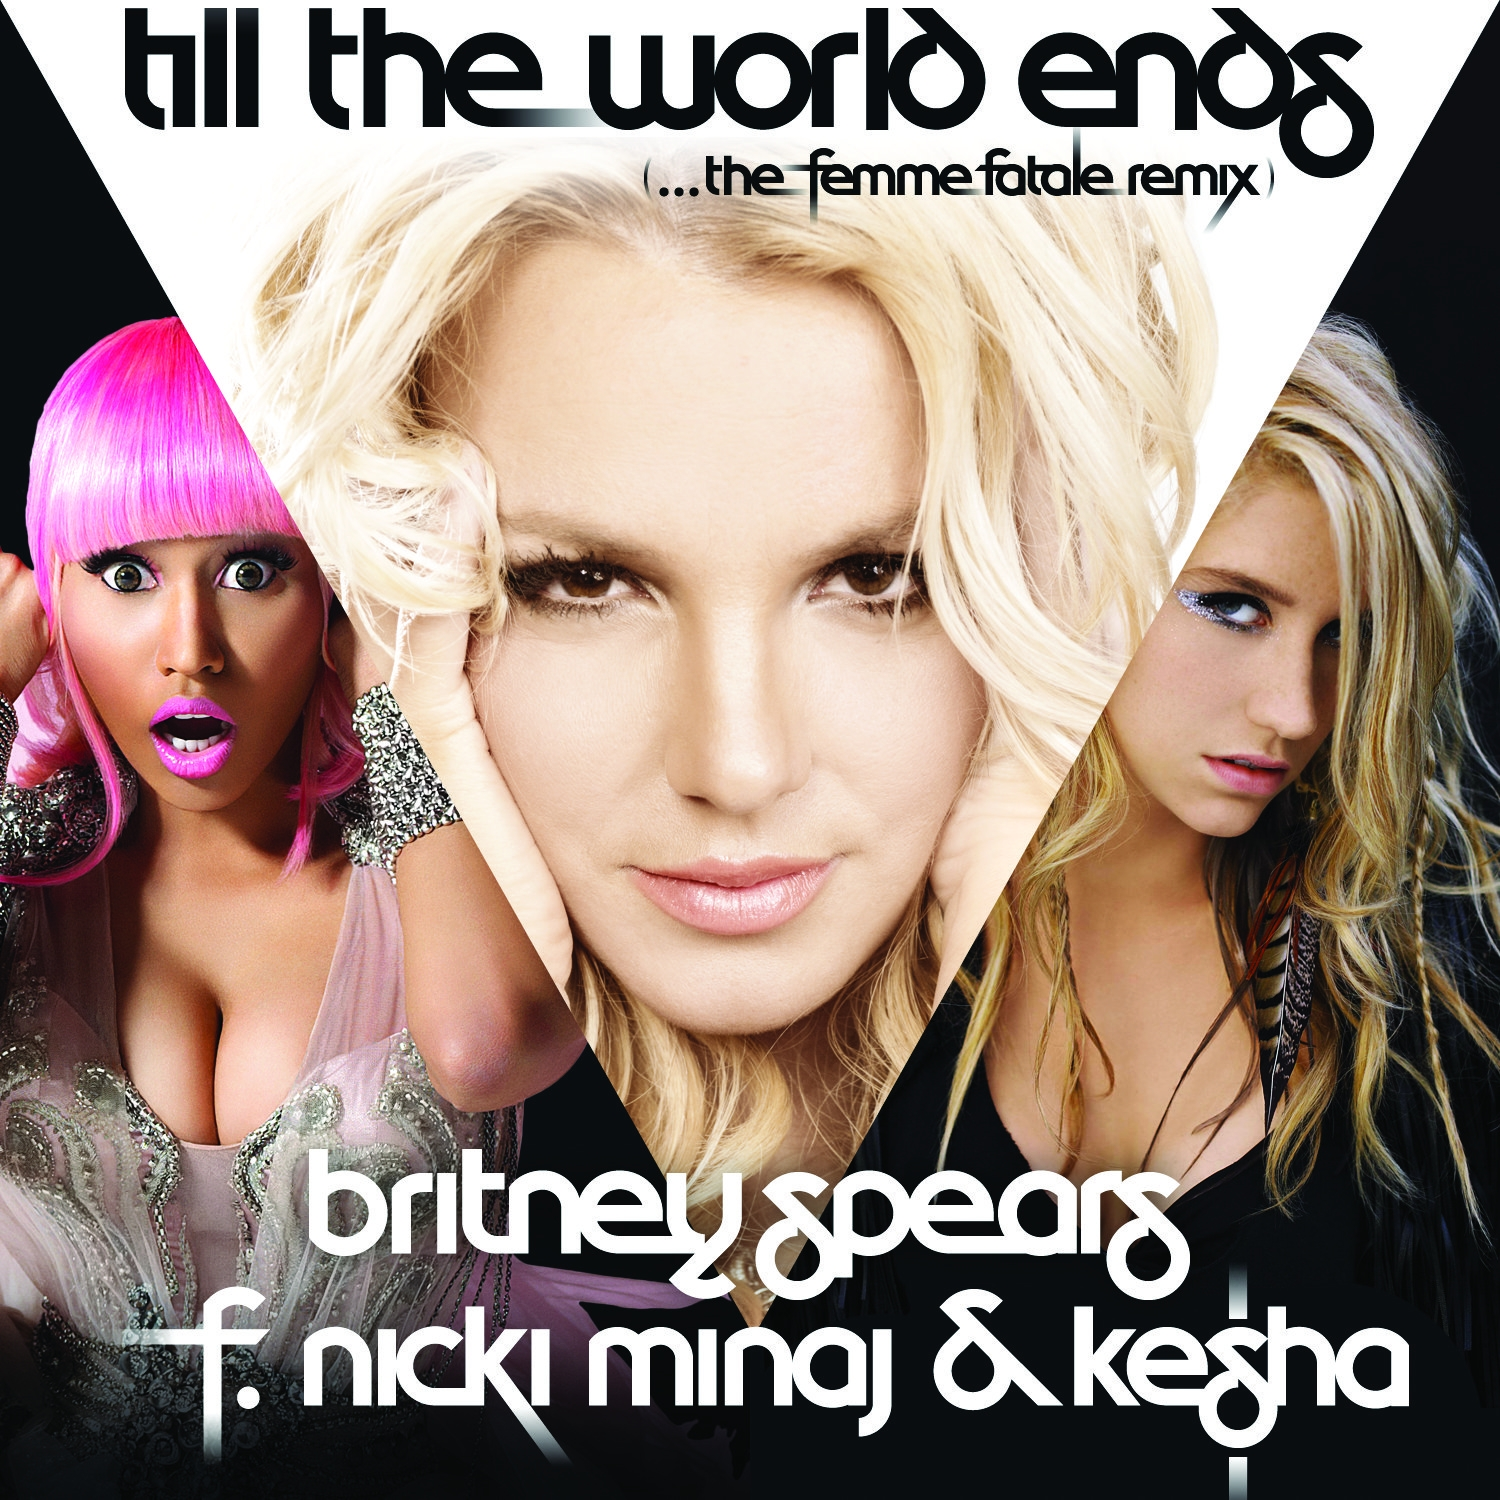 http://3.bp.blogspot.com/-ThPsBvJqoTg/TepArmUESRI/AAAAAAAAAYg/iBeYUodkVJM/s1600/Britney-Spears-Till-The-World-Ends-The-Femme-Fatale-Remix-feat.-Nicki-Minaj-Keha-Official-Single-Cover.jpg